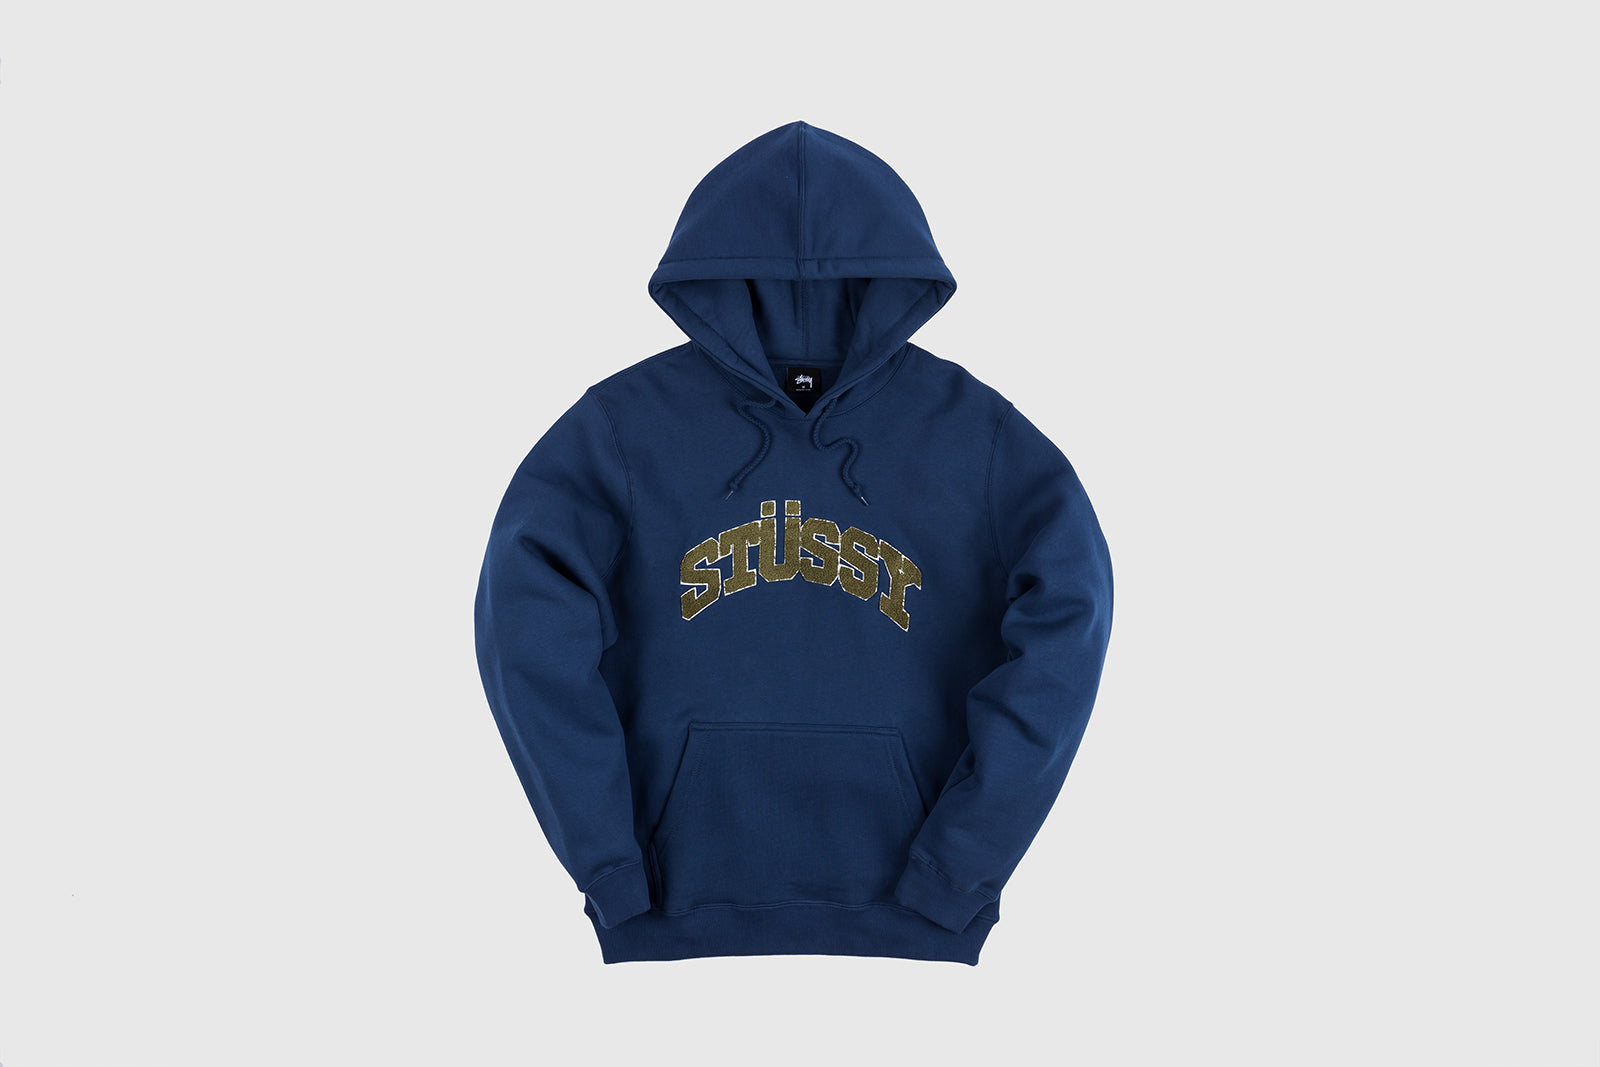 STUSSY CHENILLE ARCH APPLIQUE HOODY